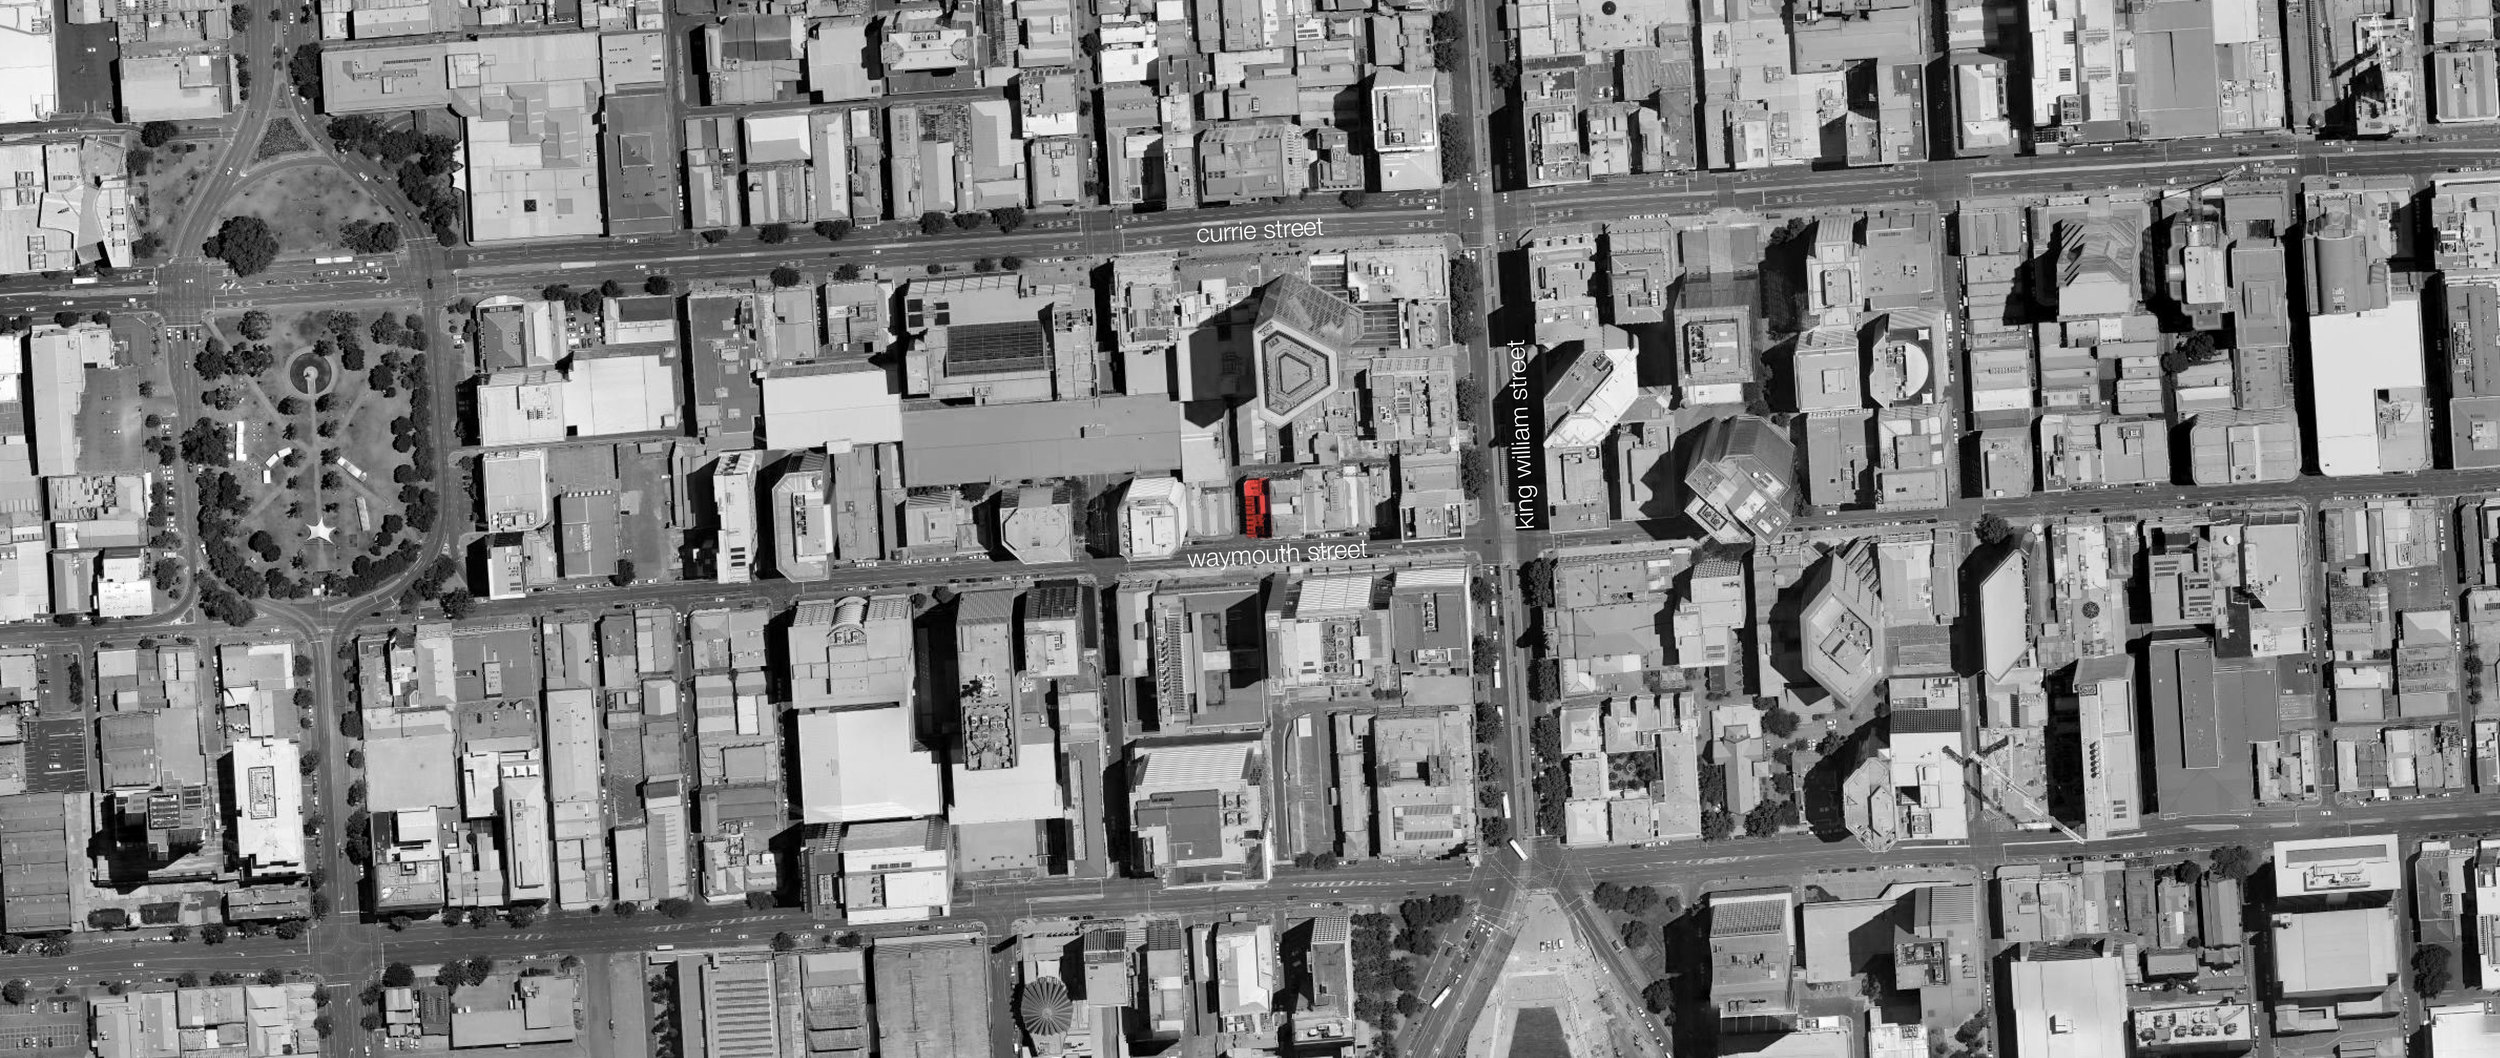 The site is located within a previously inactive (now thriving) region of Adelaide's CBD